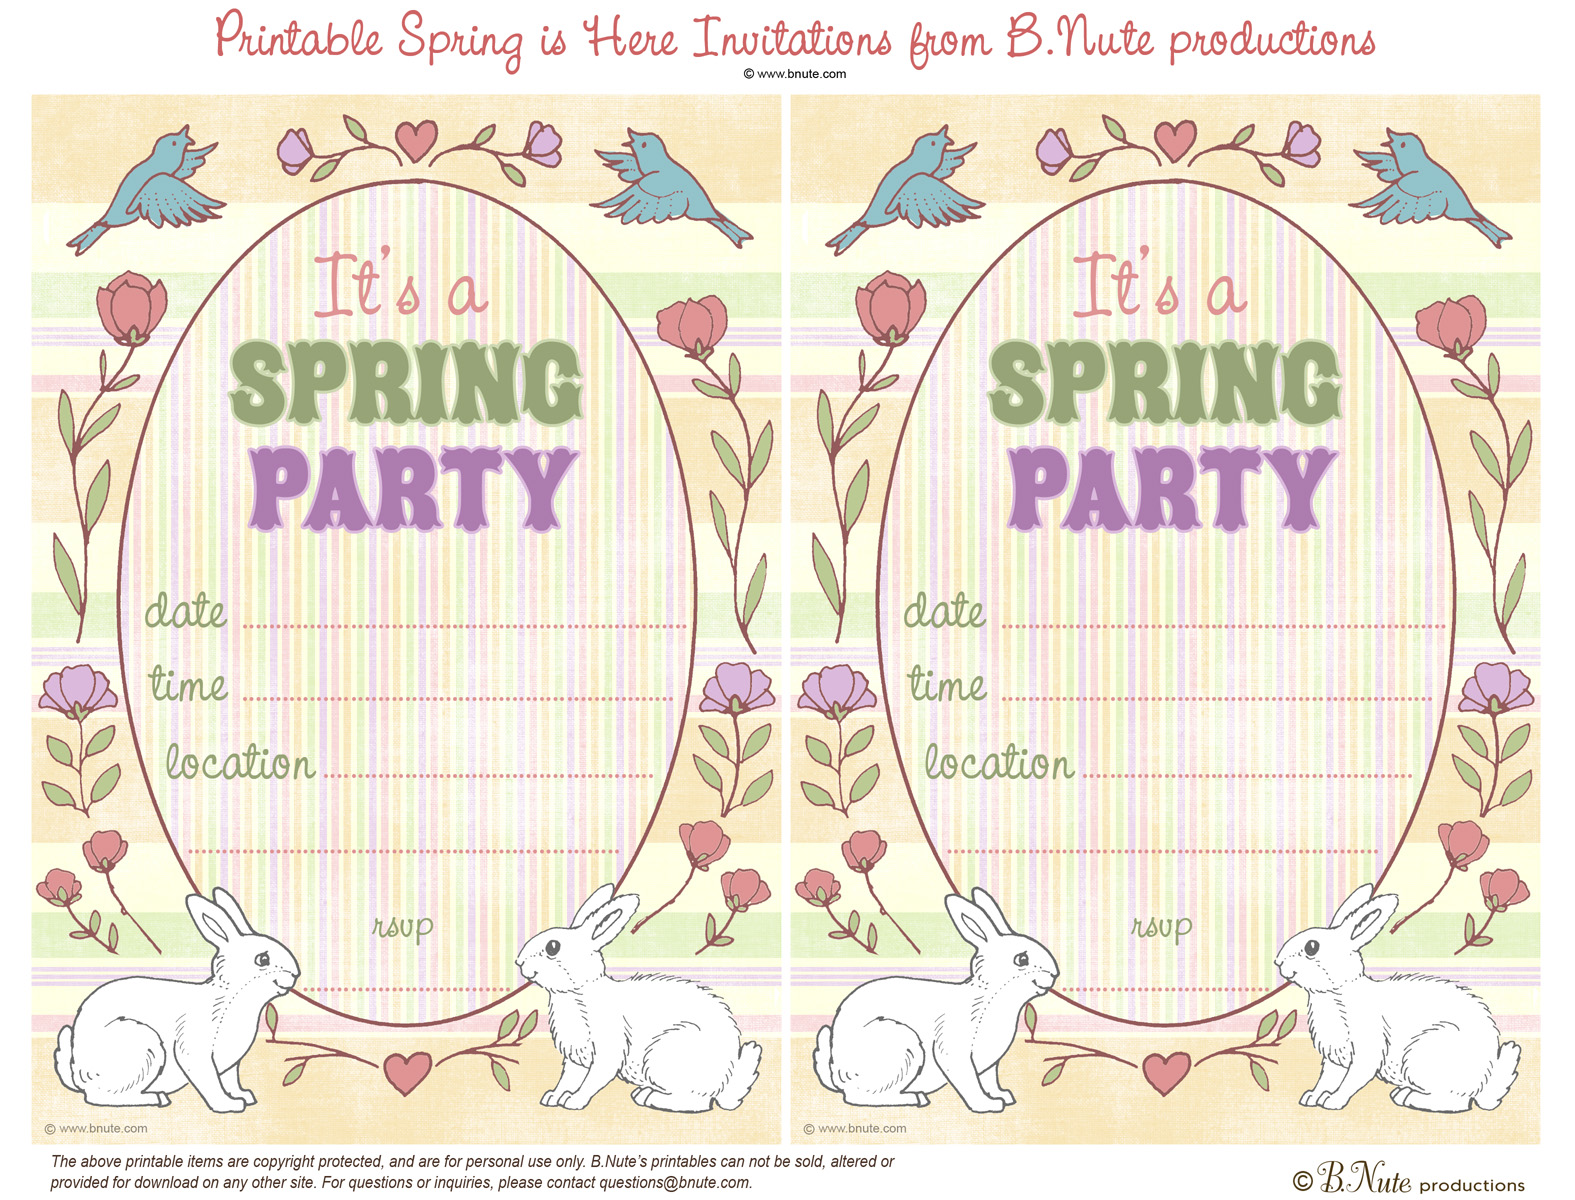 bnute productions Free Printable Spring is Here Easter Invitations – Easter Invitations Template